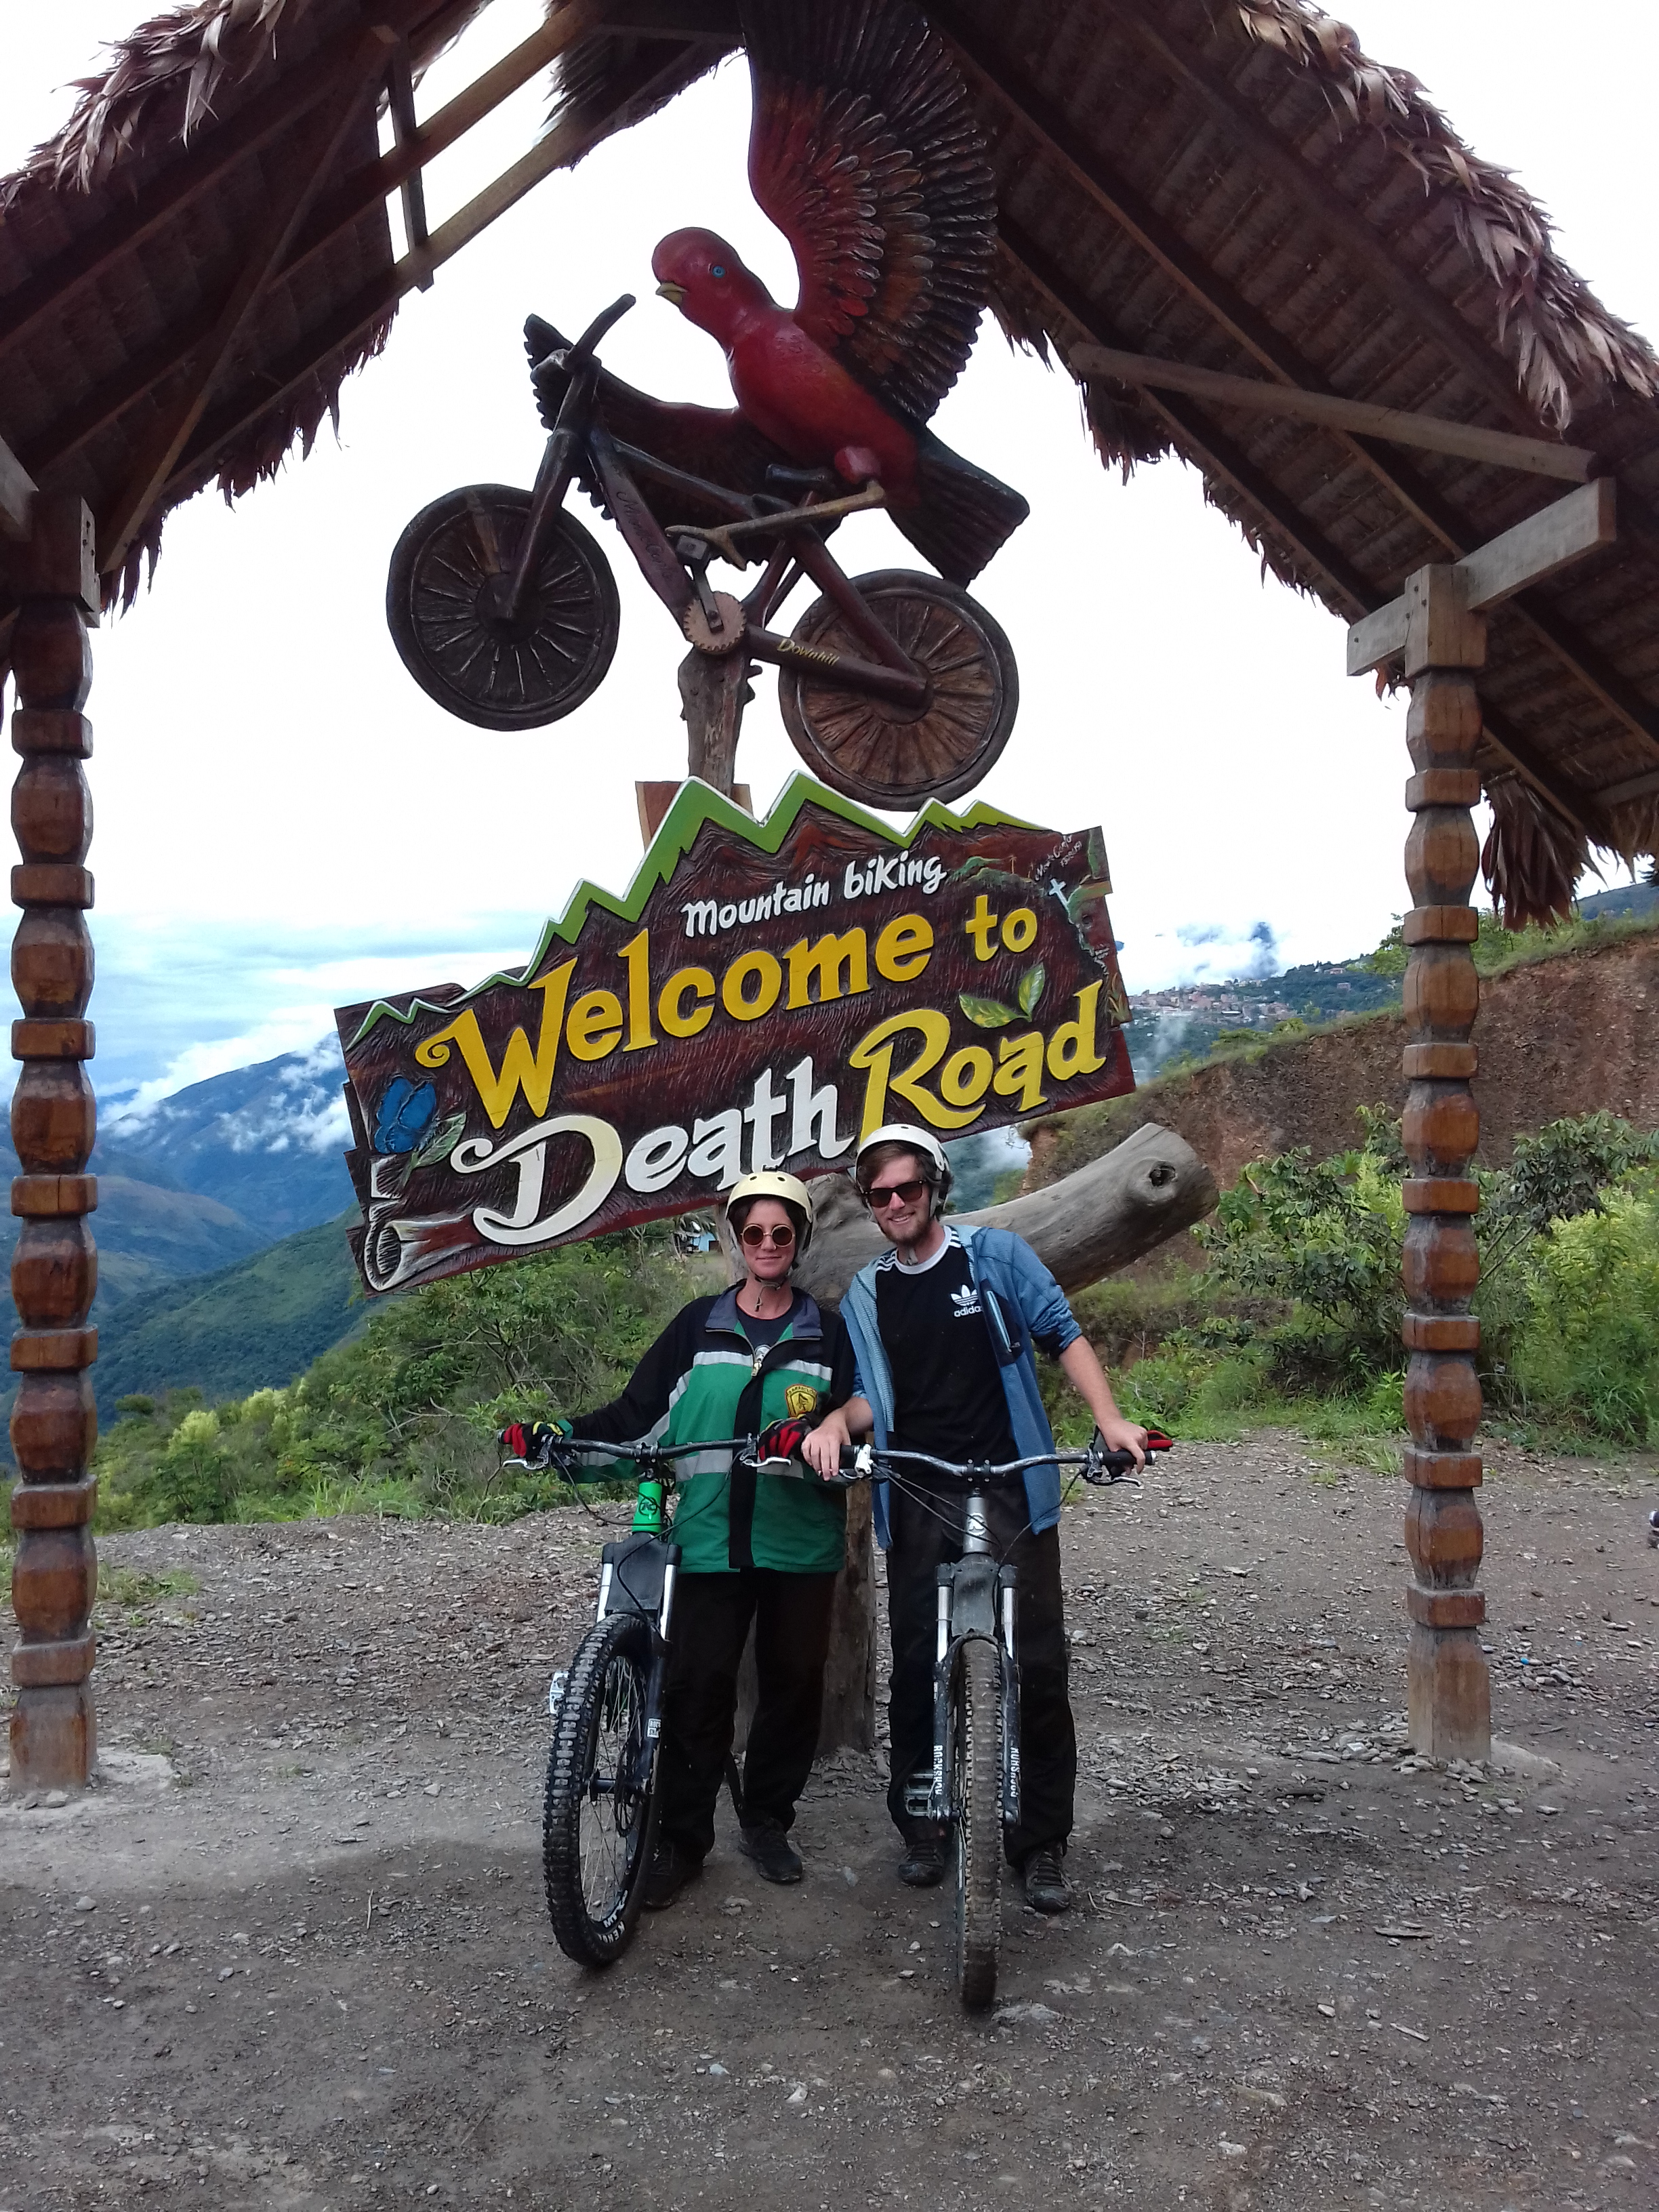 Two people on a bike standing in front of a sign